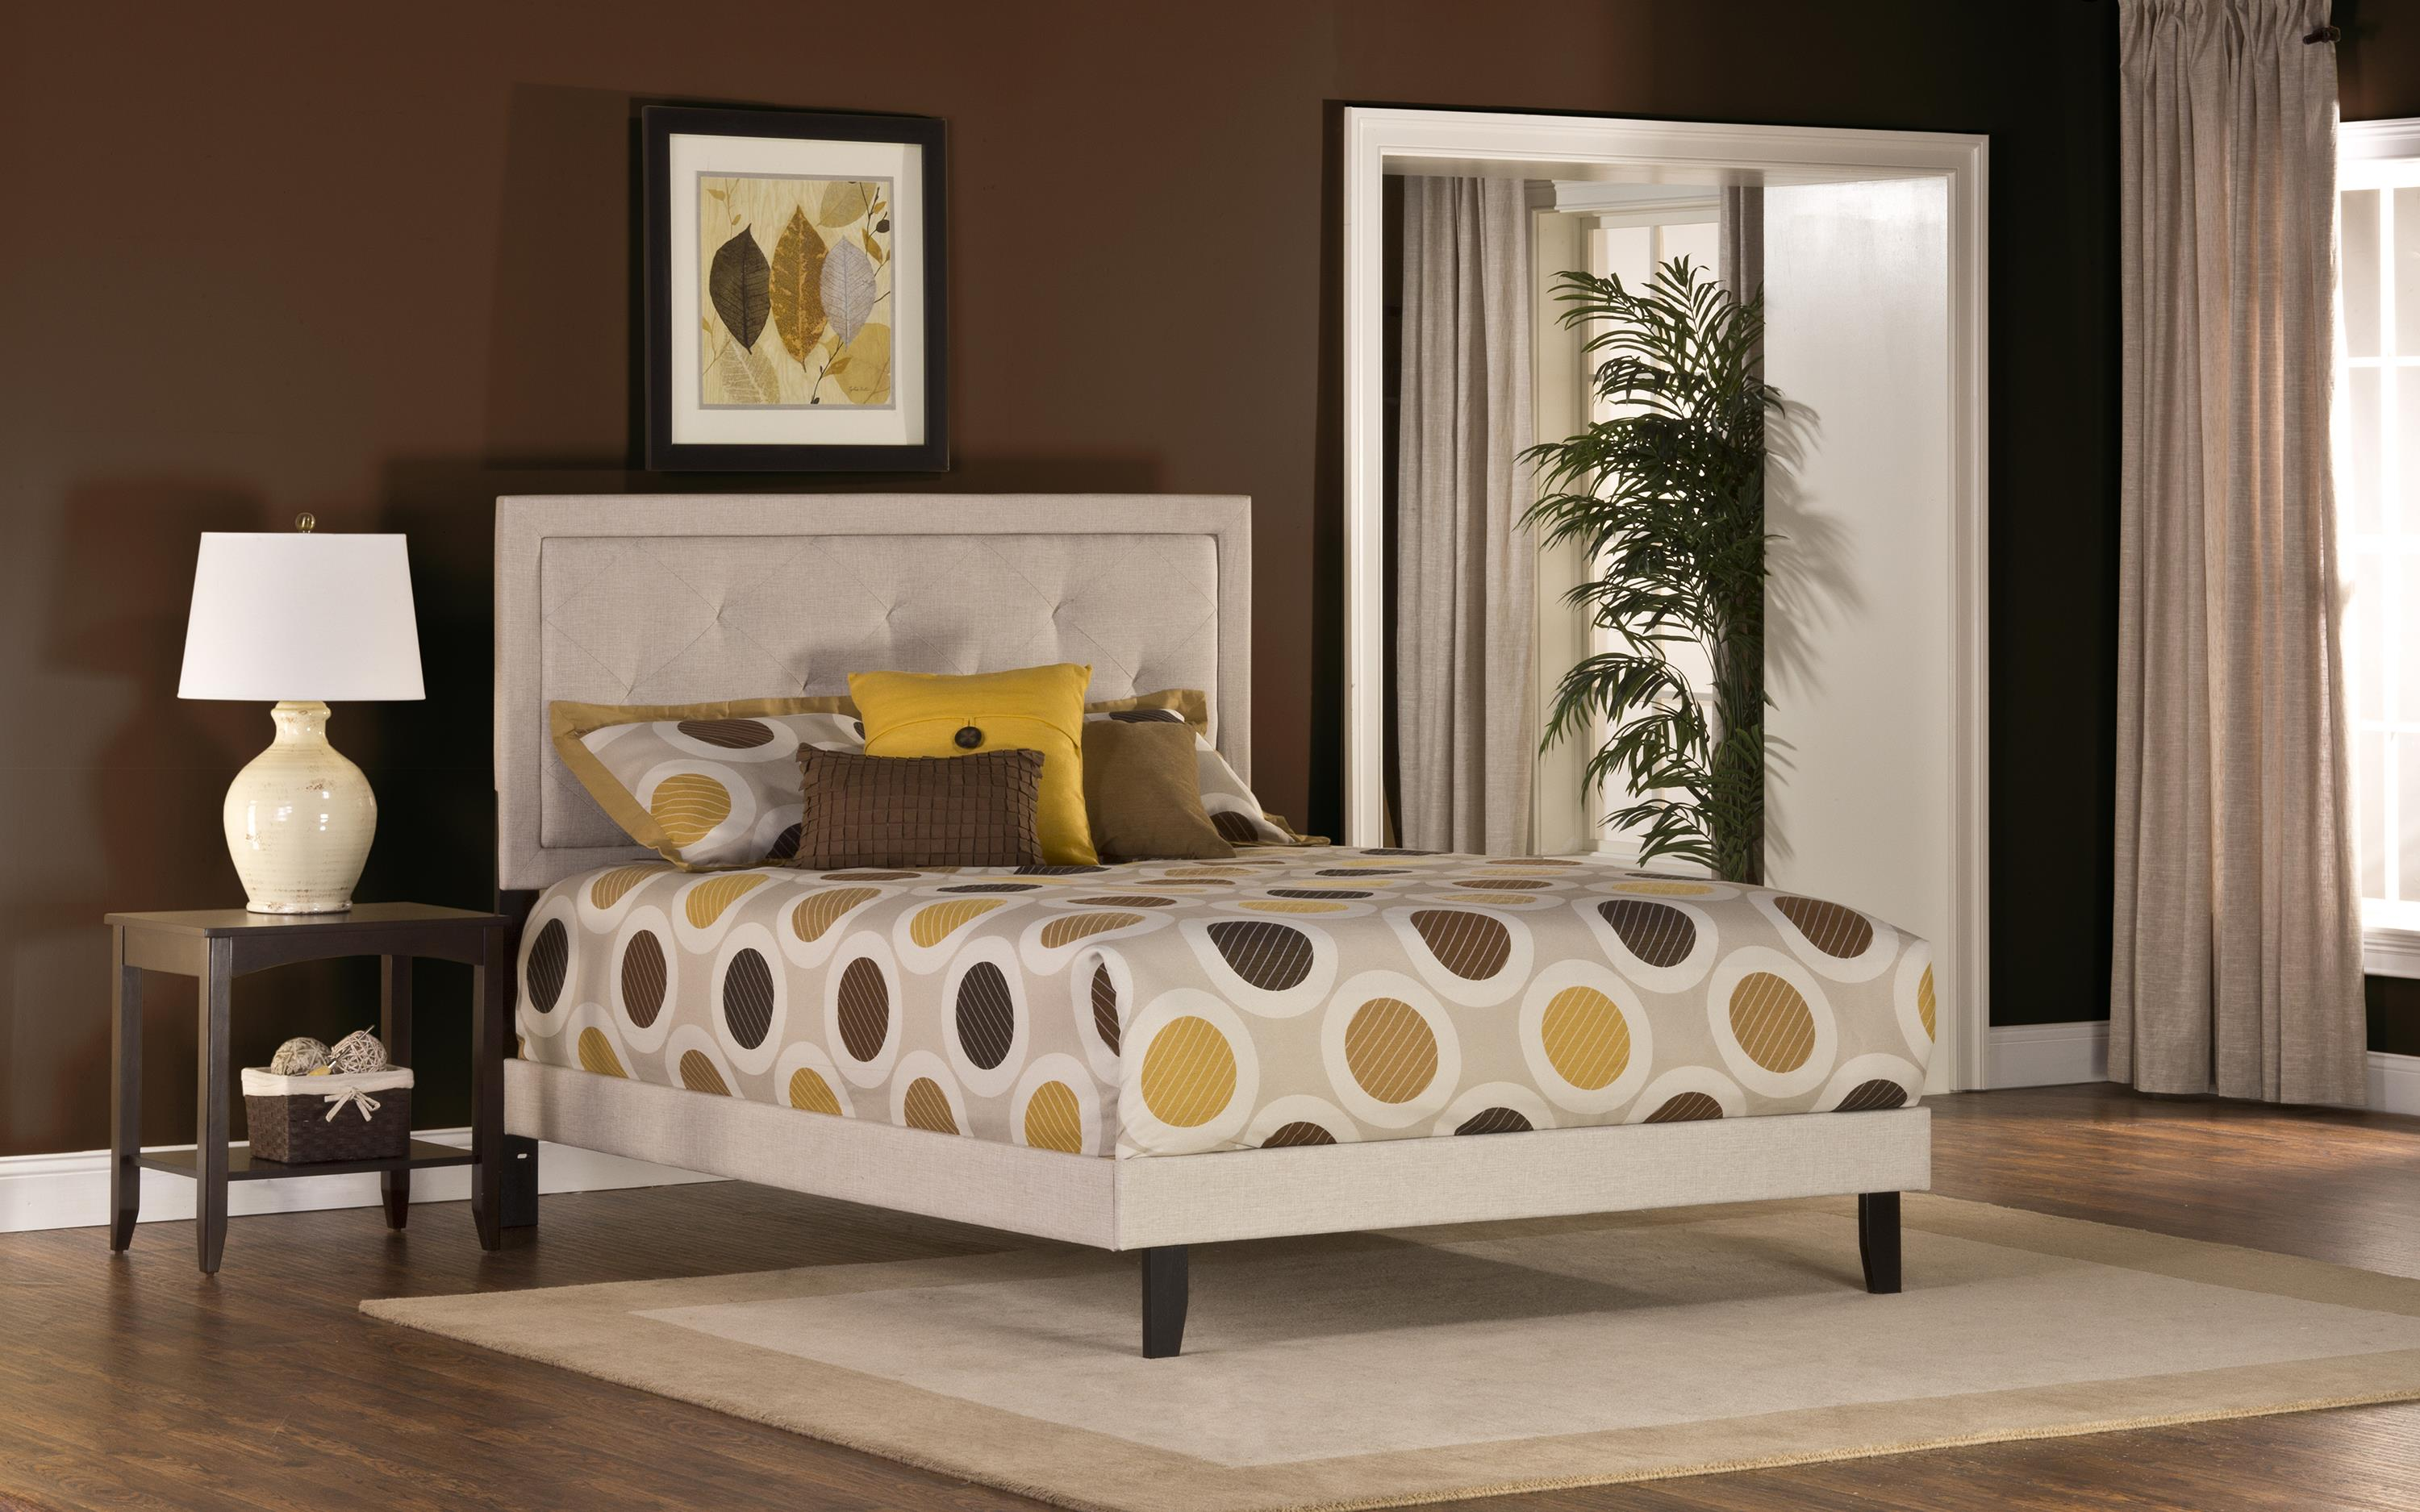 Upholstered Beds Becker Twin Bed by Hillsdale at Mueller Furniture